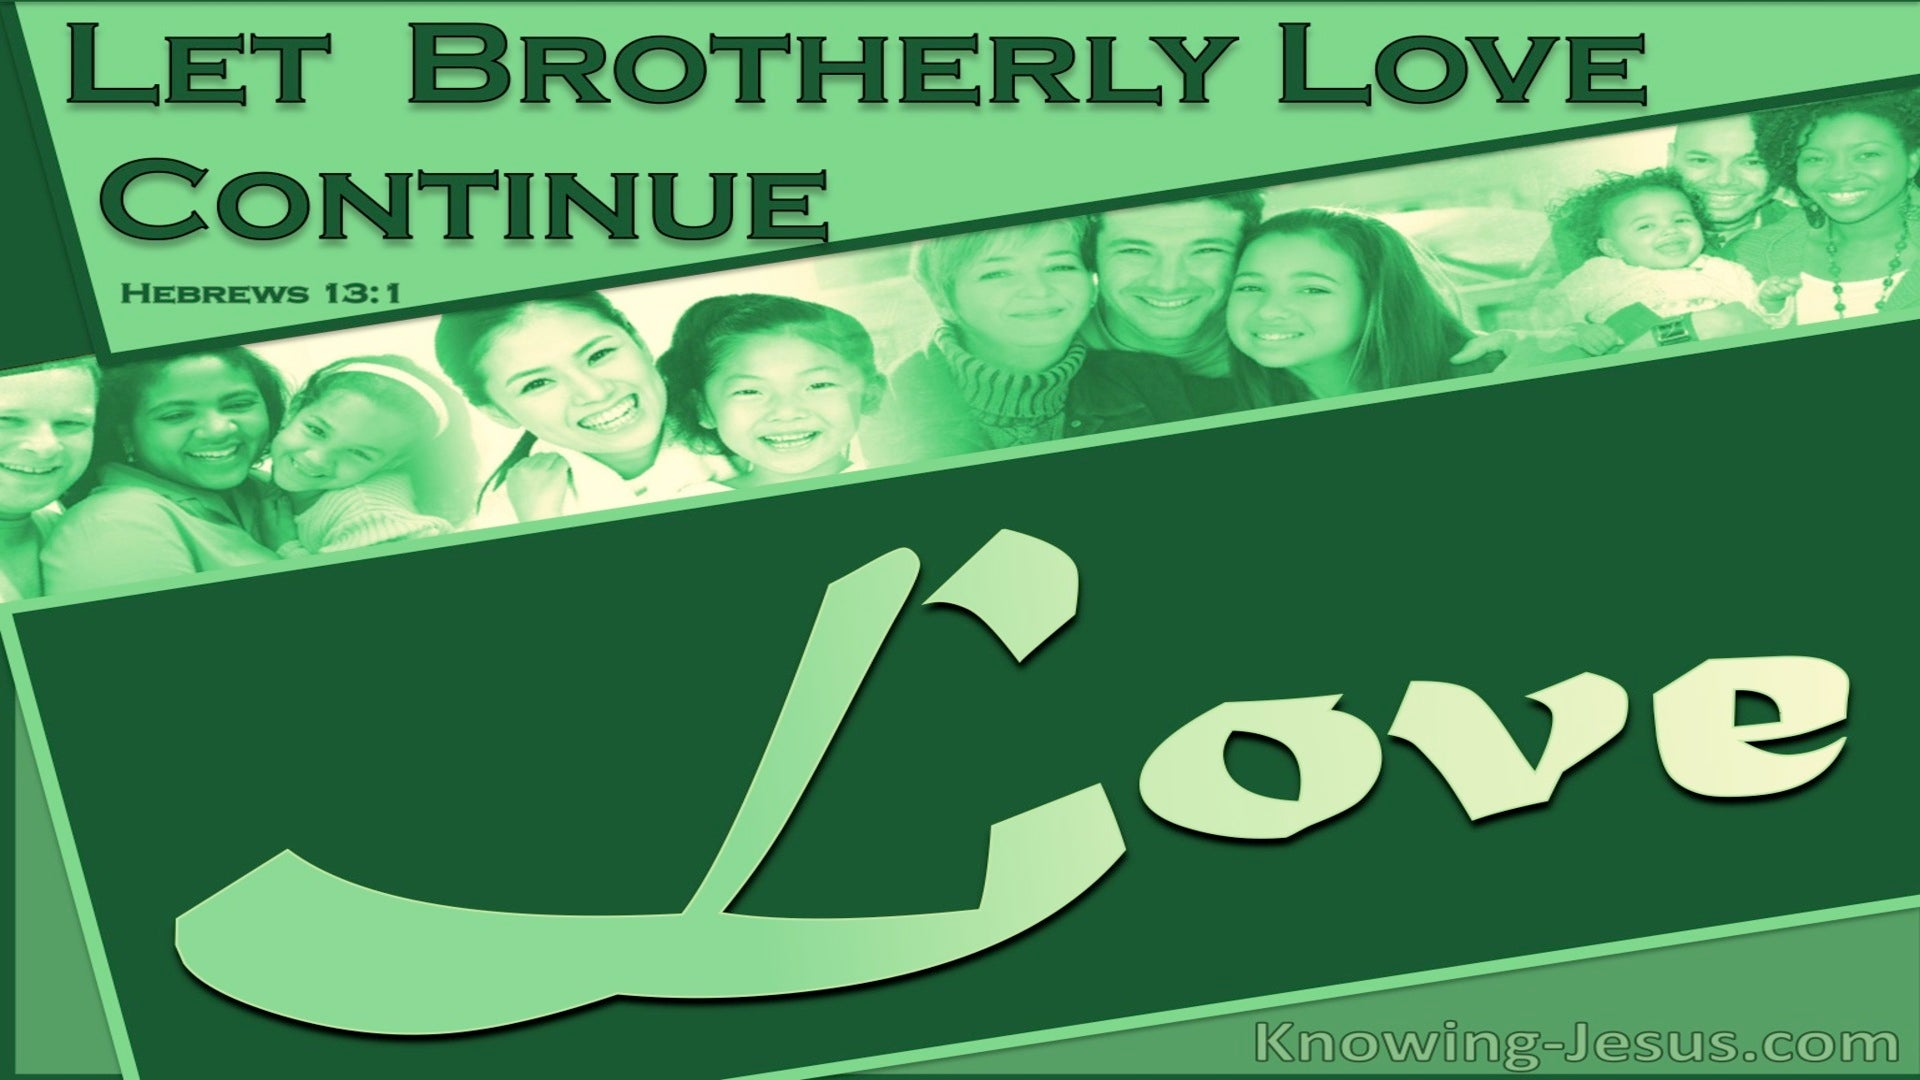 Hebrews 13:1 Let Brotherly Love Continue (green)